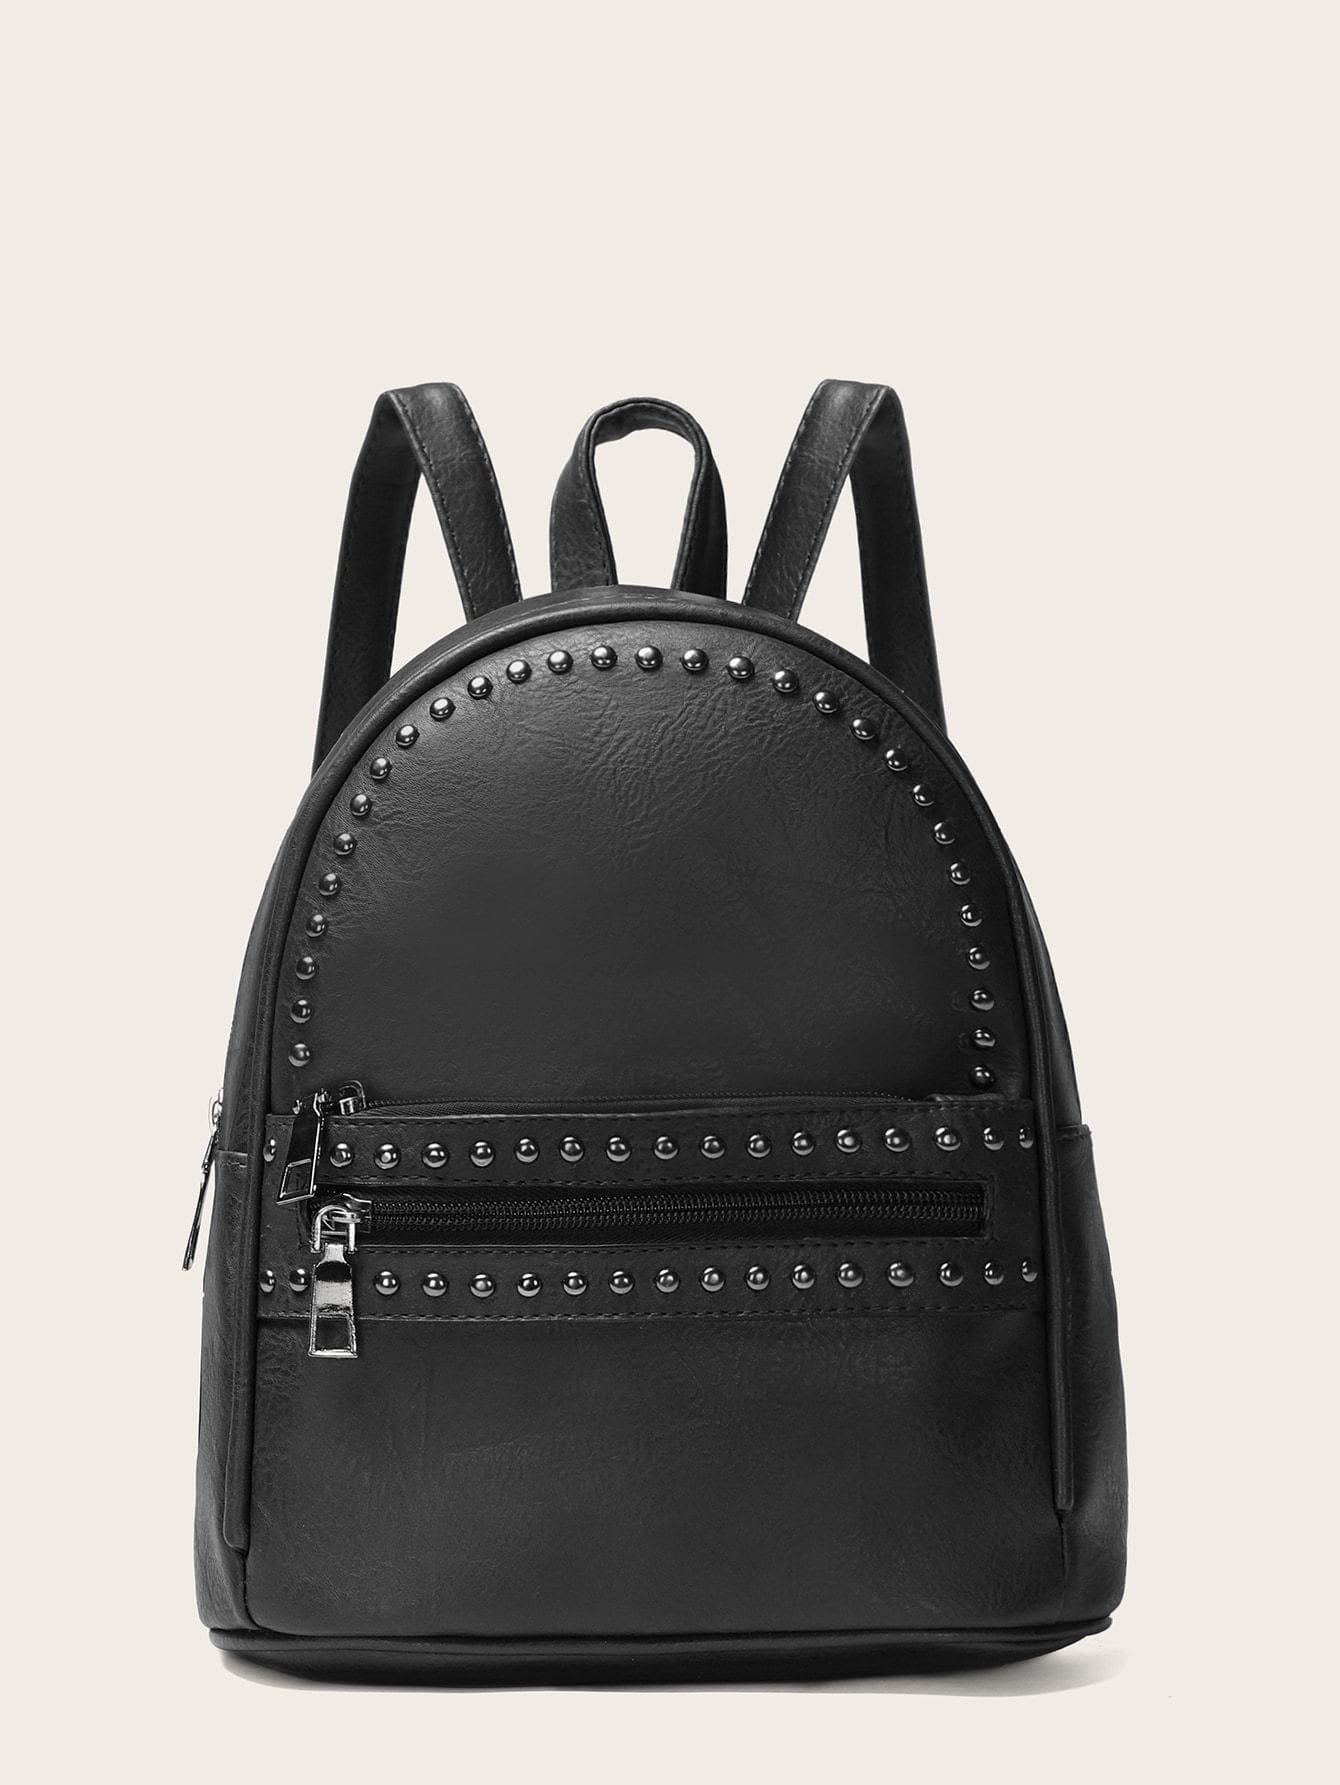 Studded Decor Pocket Front Backpack